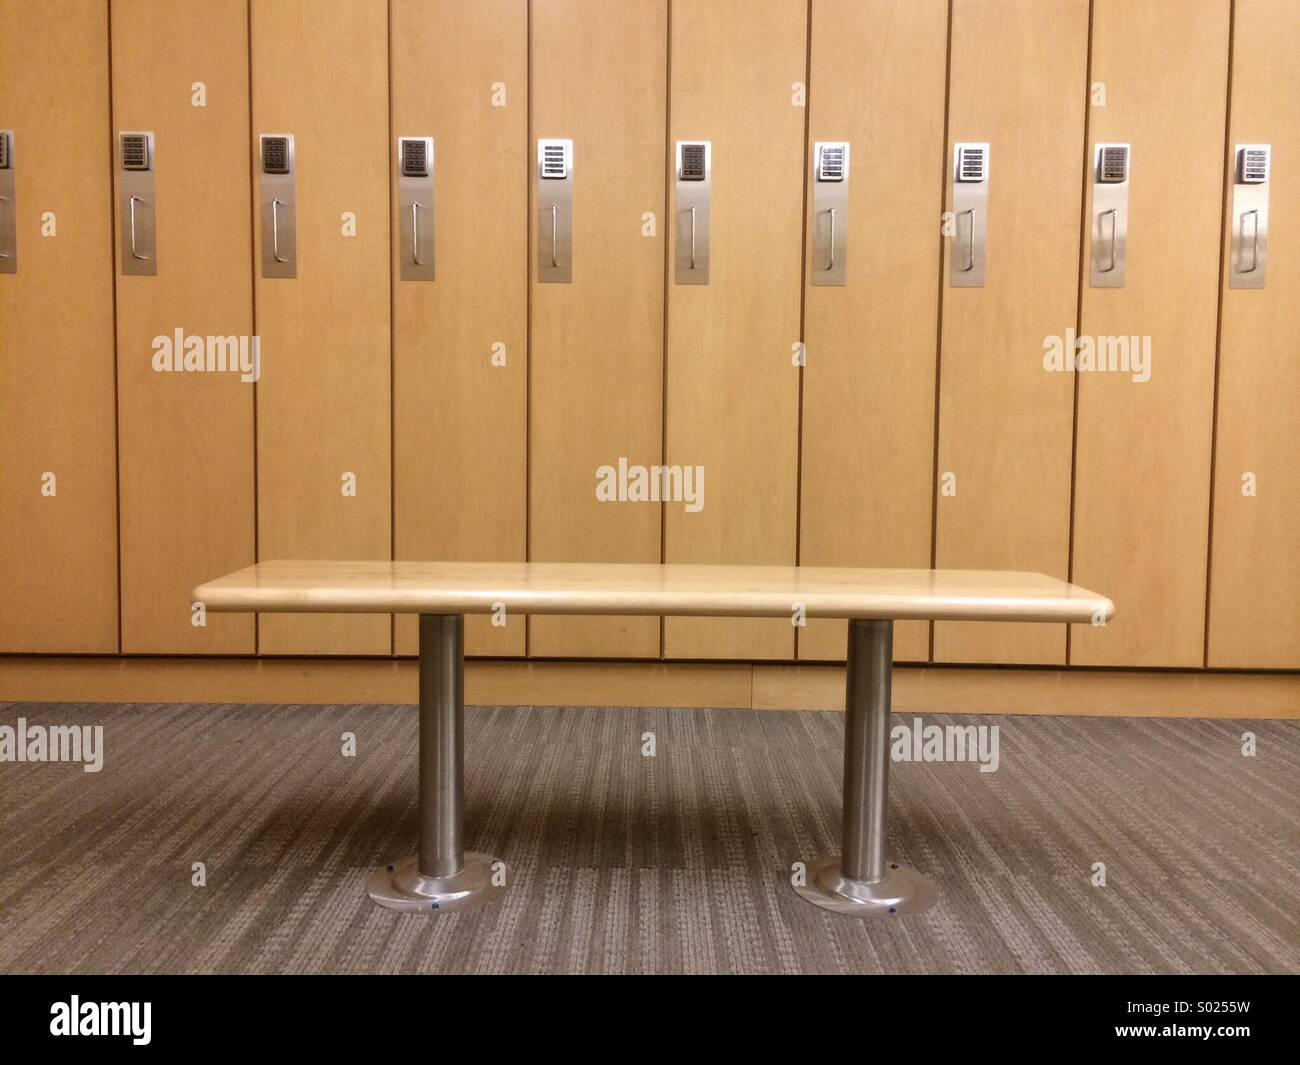 Bench and lockers in a fitness facility. - Stock Image